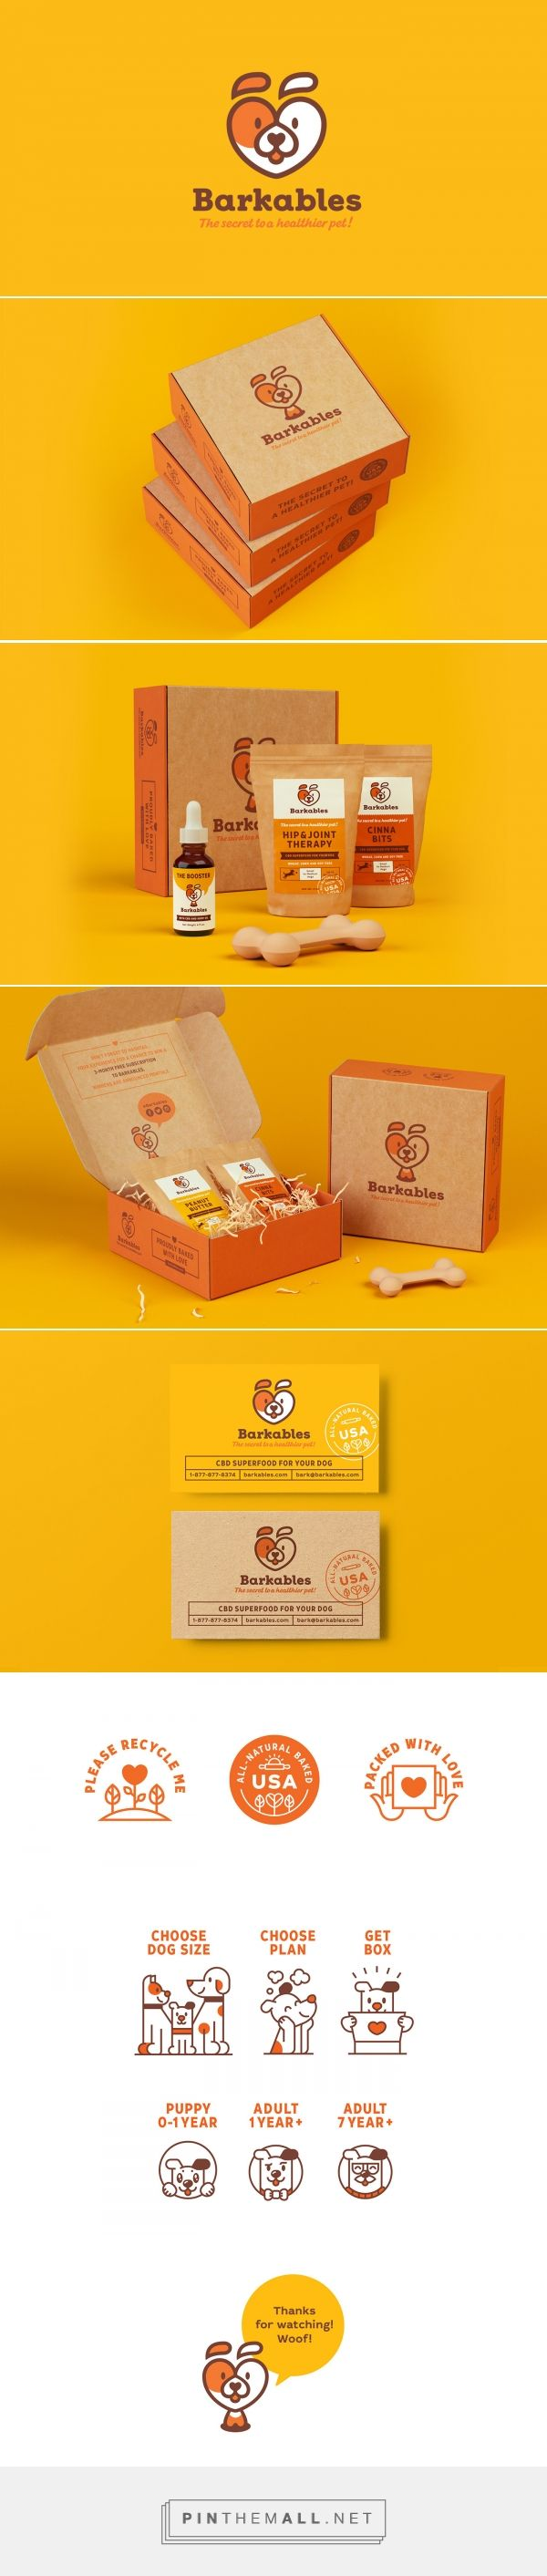 Art direction, branding and packaging for Barkables on Behance curated by Packaging Diva PD. Subscription box service for the packaging smile file : )